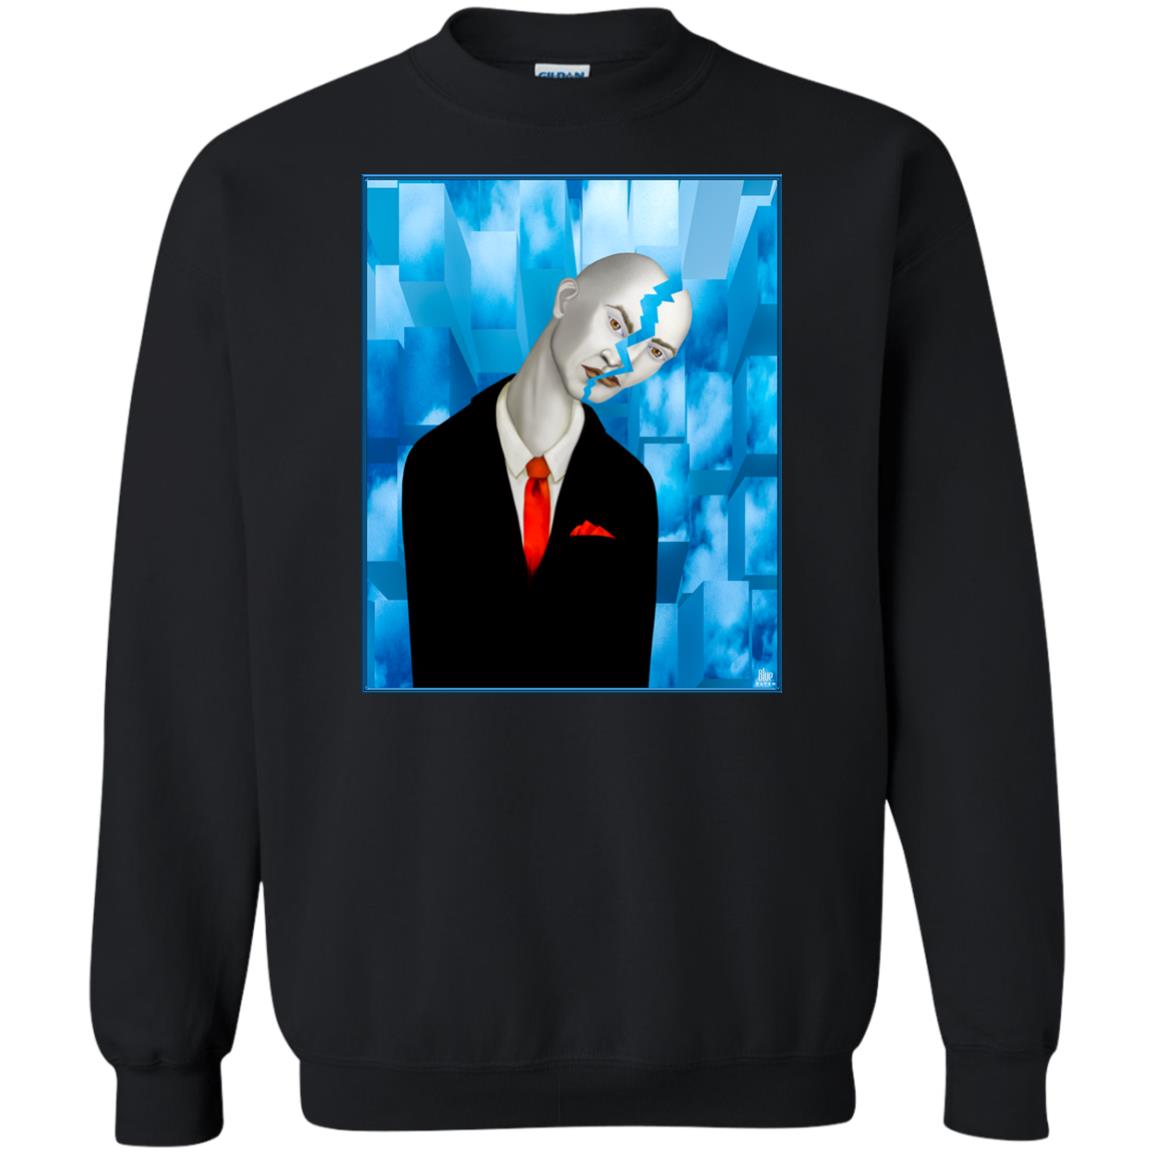 Cracked - Men's Crew Neck Sweatshirt